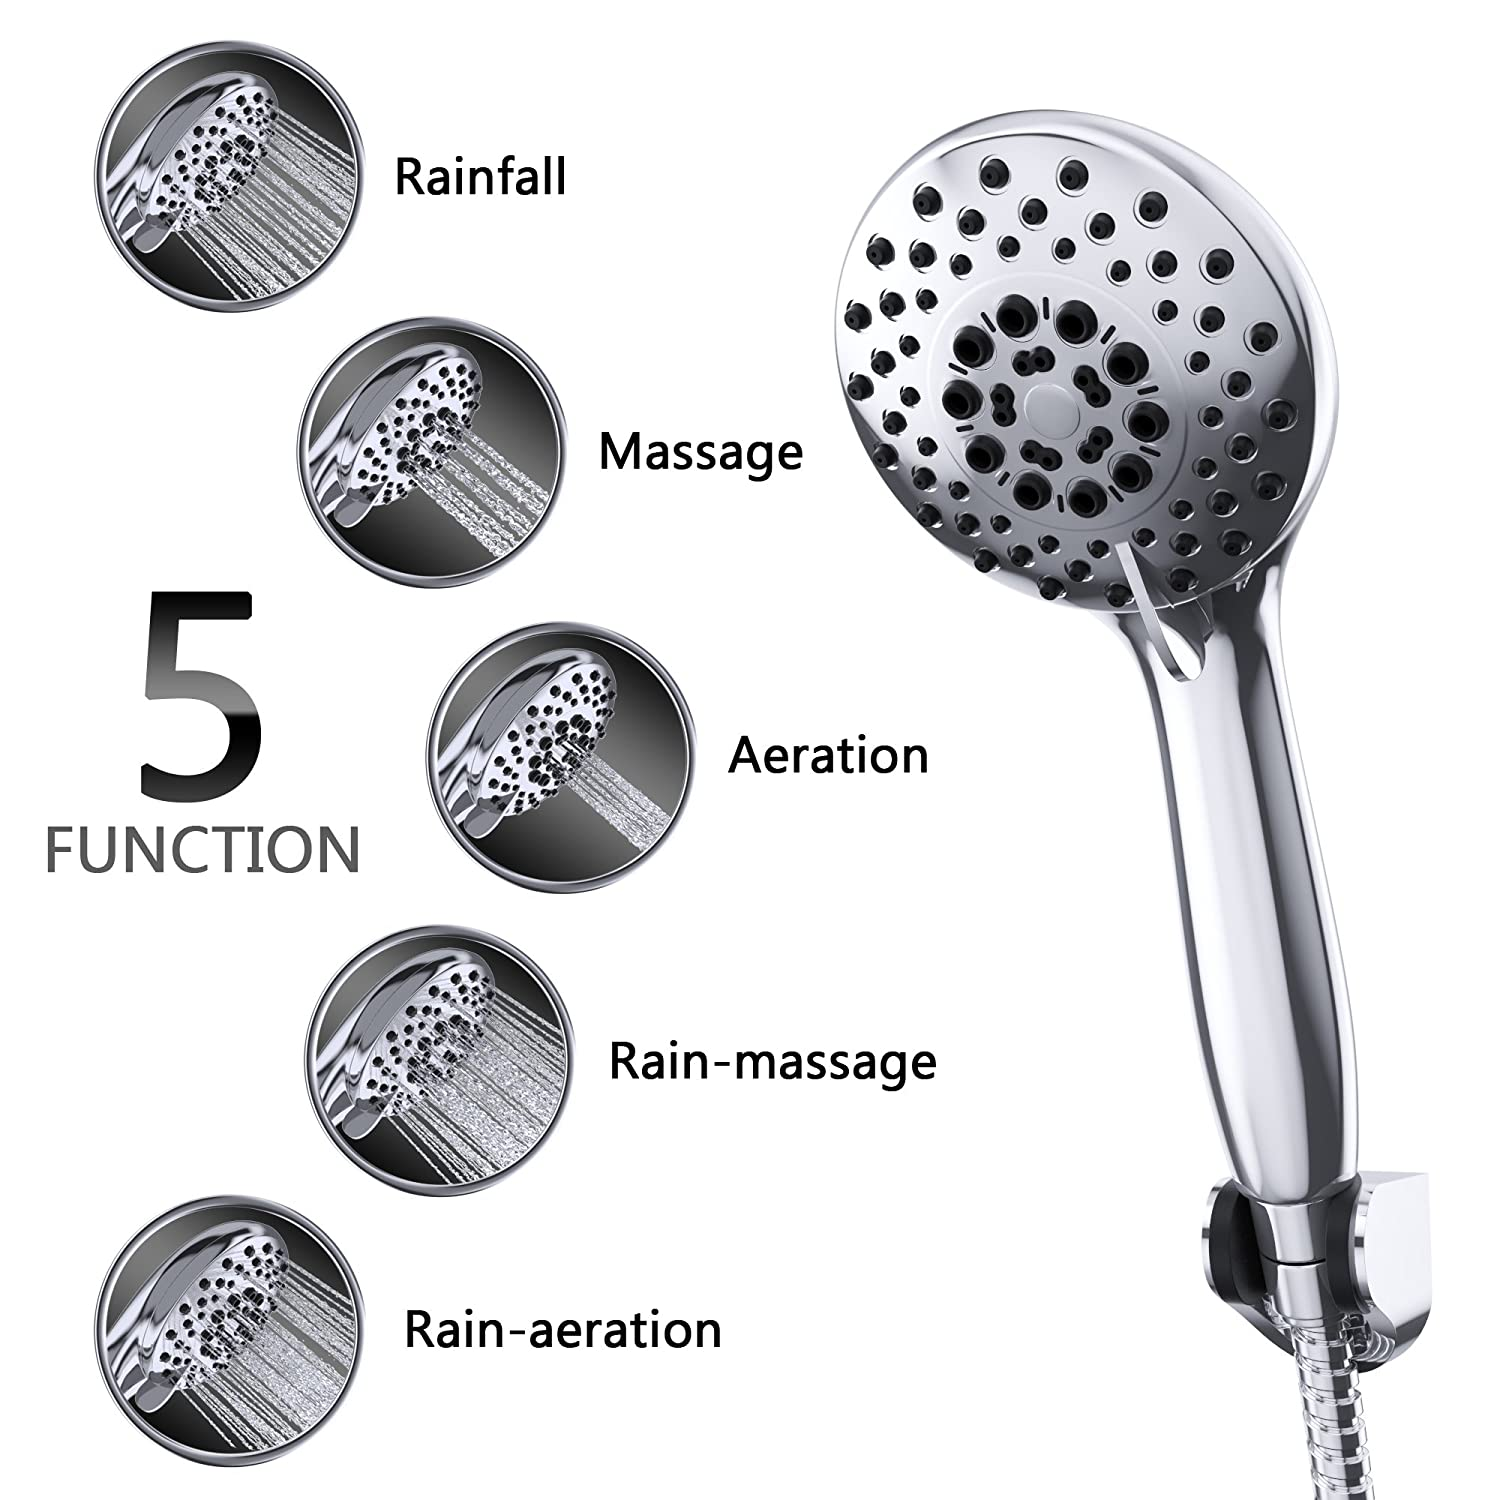 Luxury Handheld Shower Heads - Rain Shower Head By Smartier - High ...